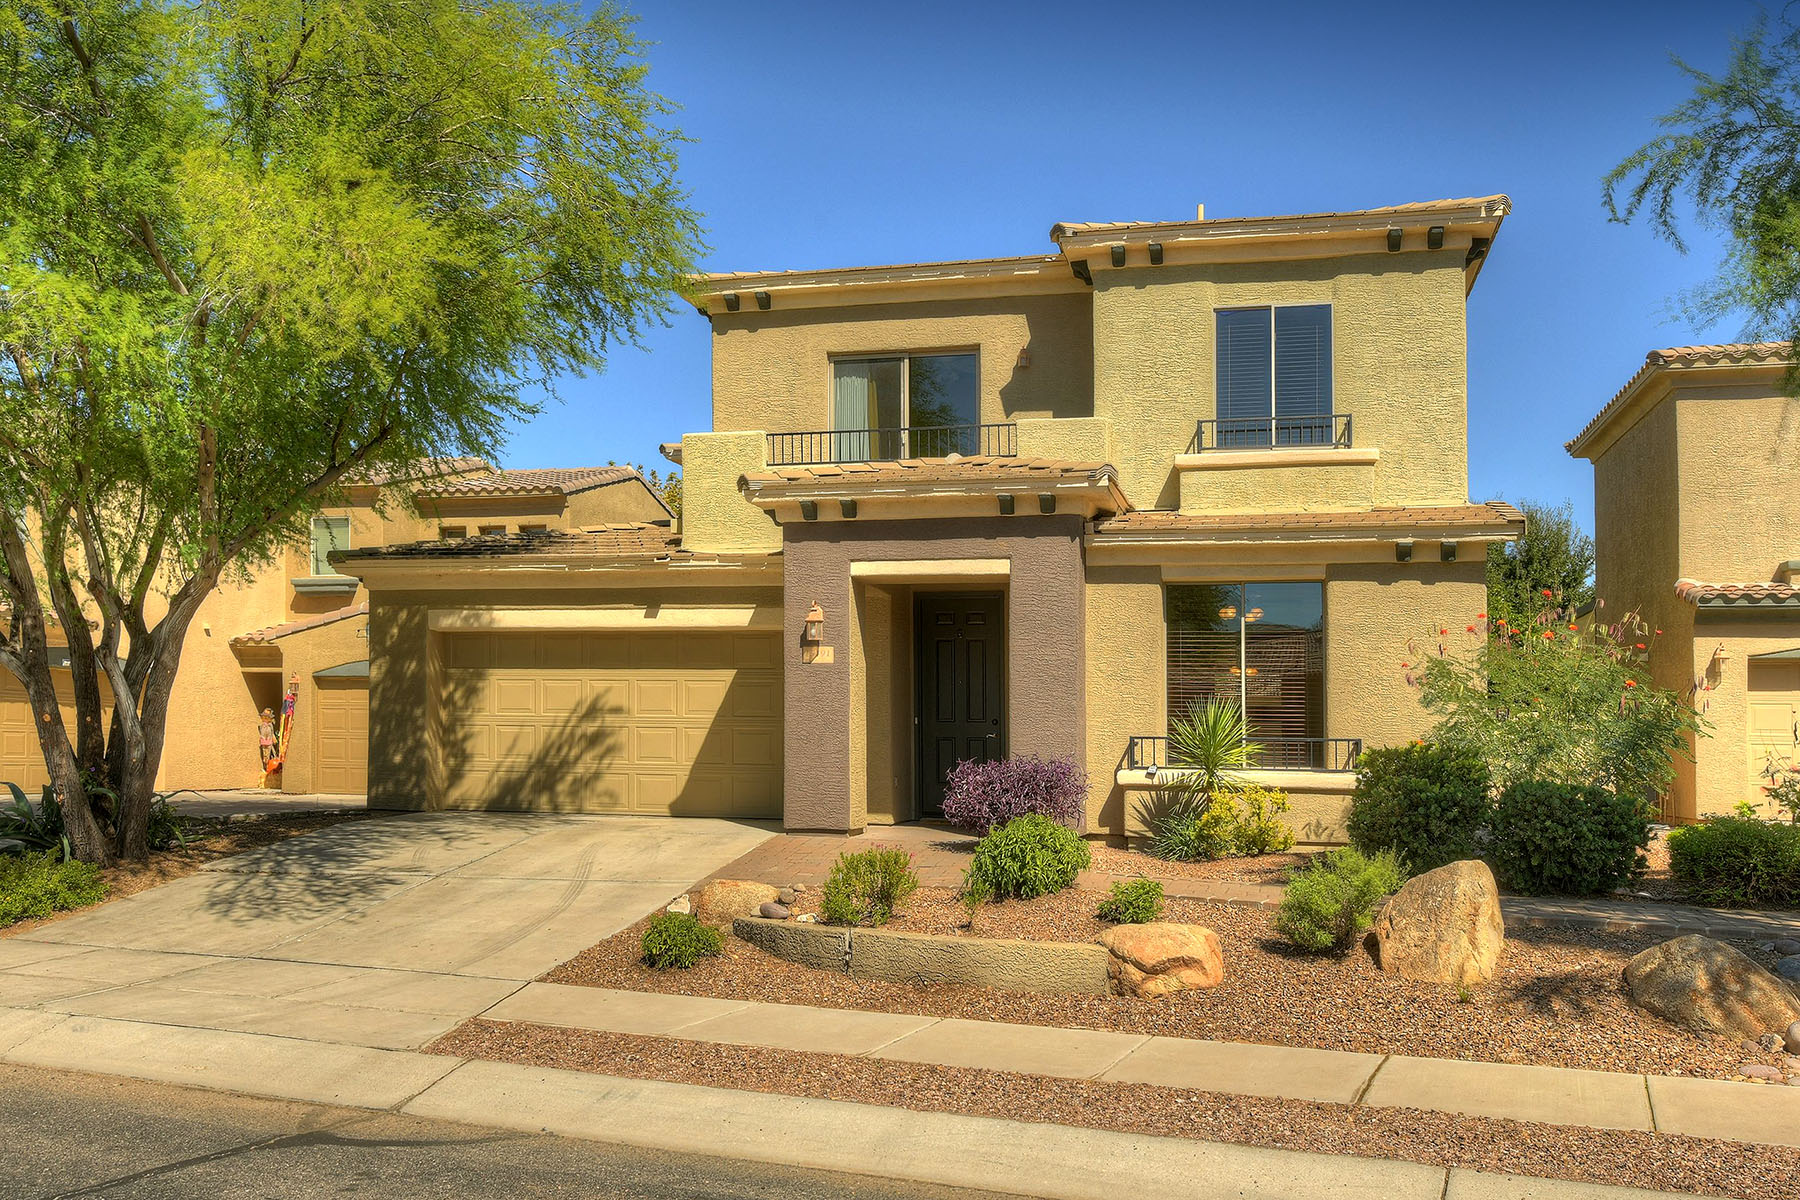 Single Family Homes for Active at Lakefront Property 15191 S Via Del Encanto Sahuarita, Arizona 85629 United States